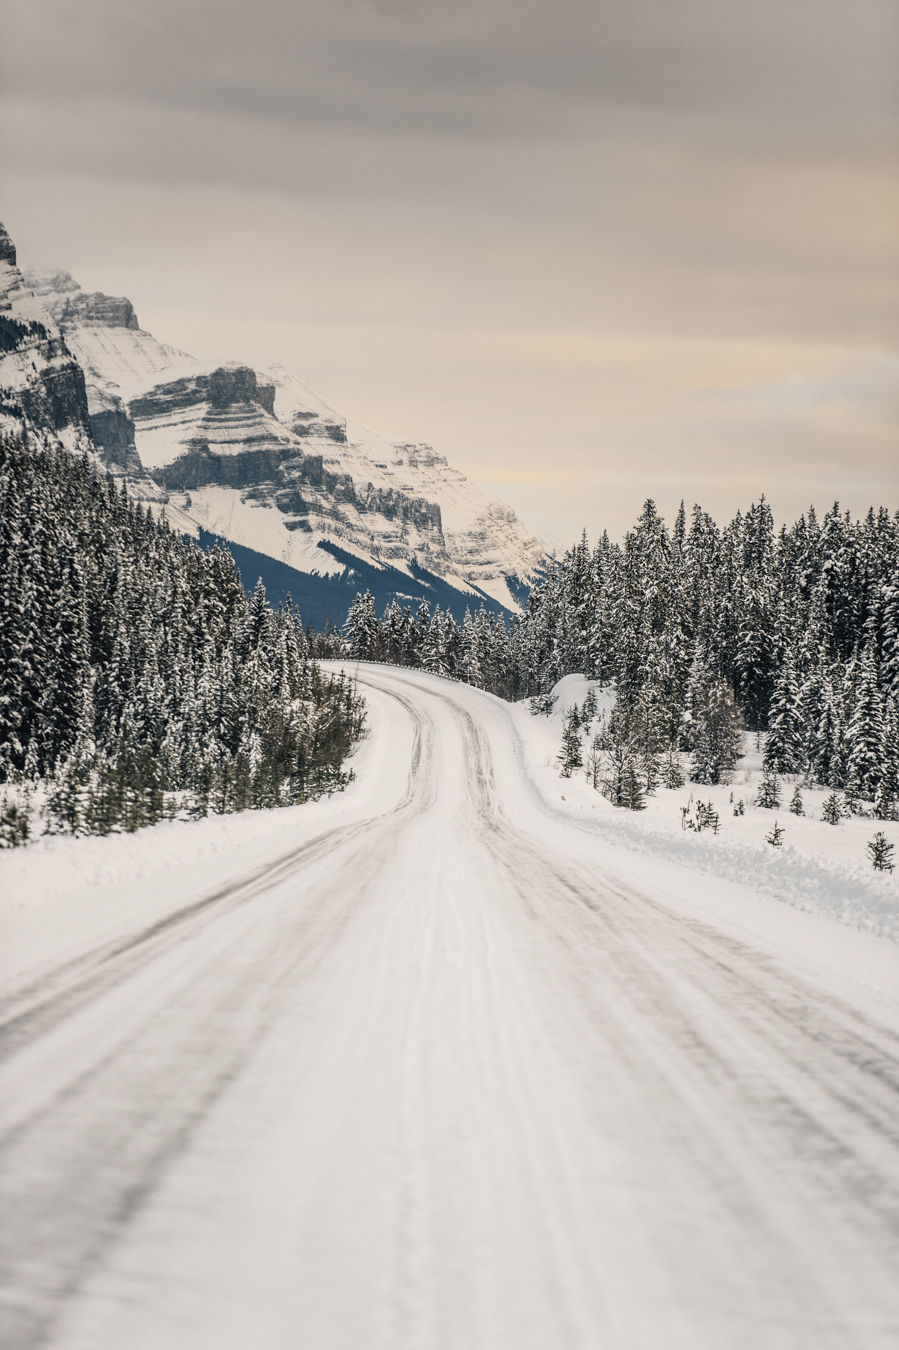 icefields-parkway-christian-frumolt-fotografie_web_small-105